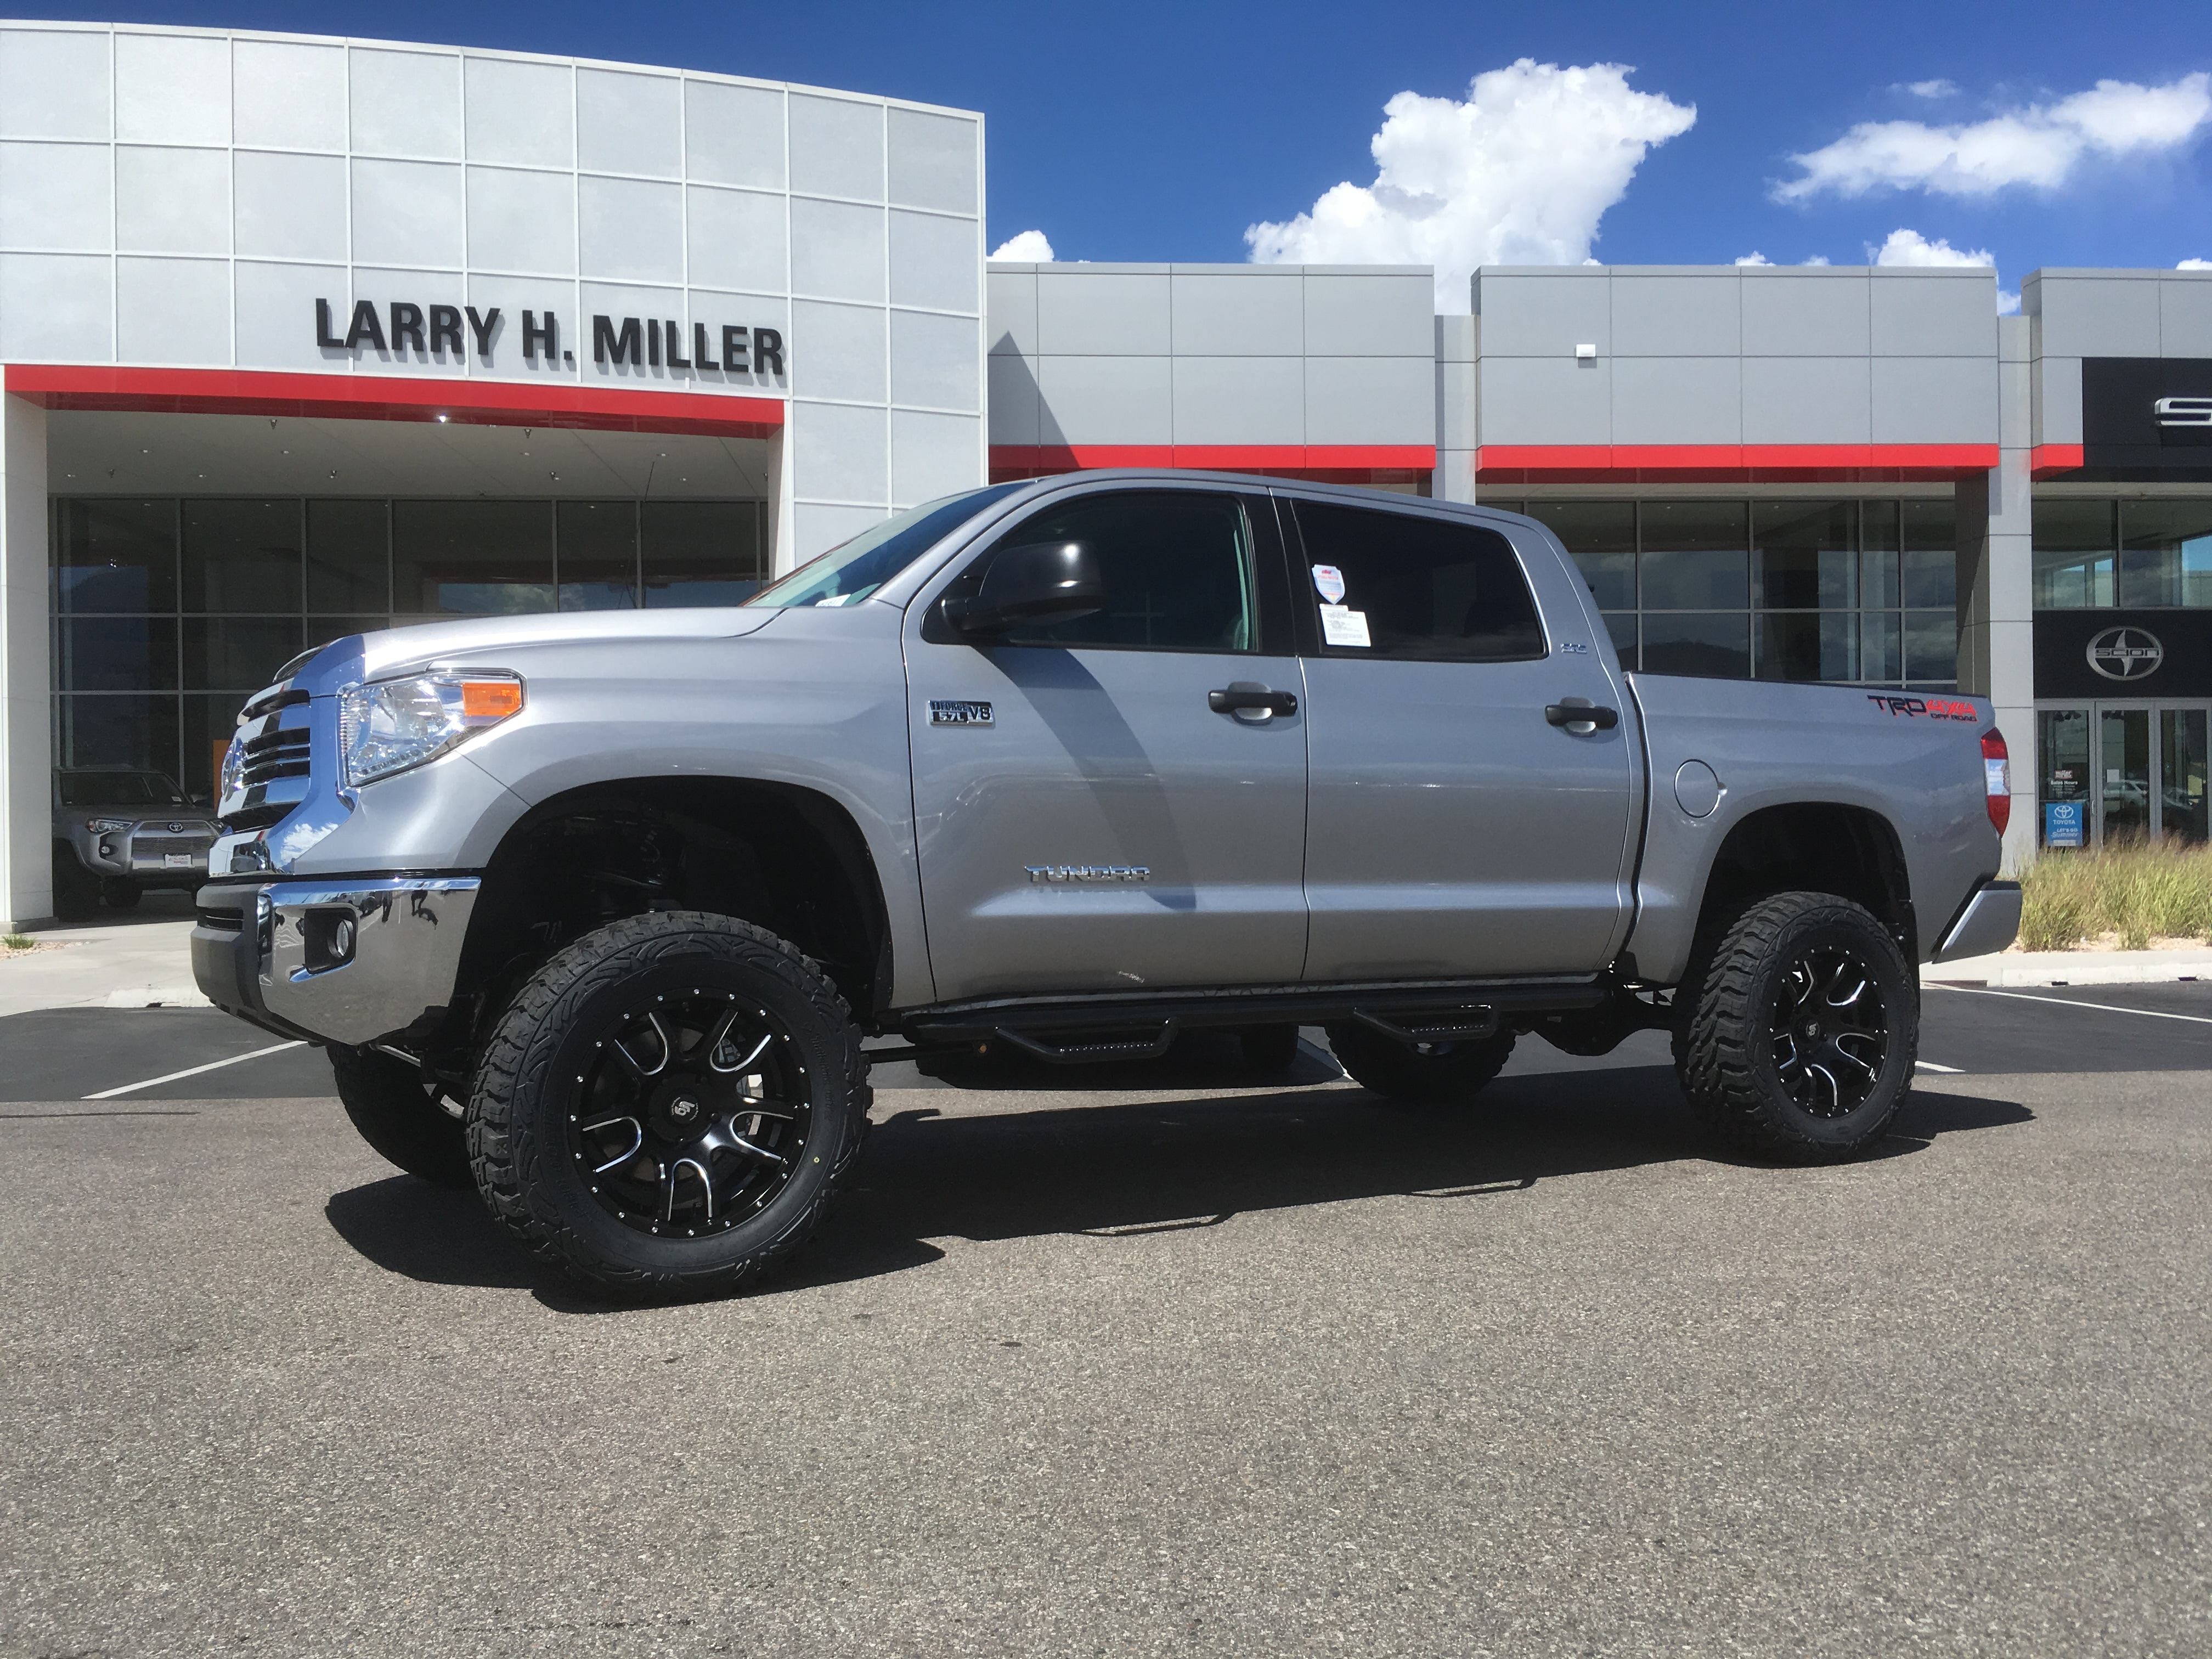 Custom Toyota Trucks Cars And Suvs Larry H Miller Murray 2004 Truck Lifted The Customized